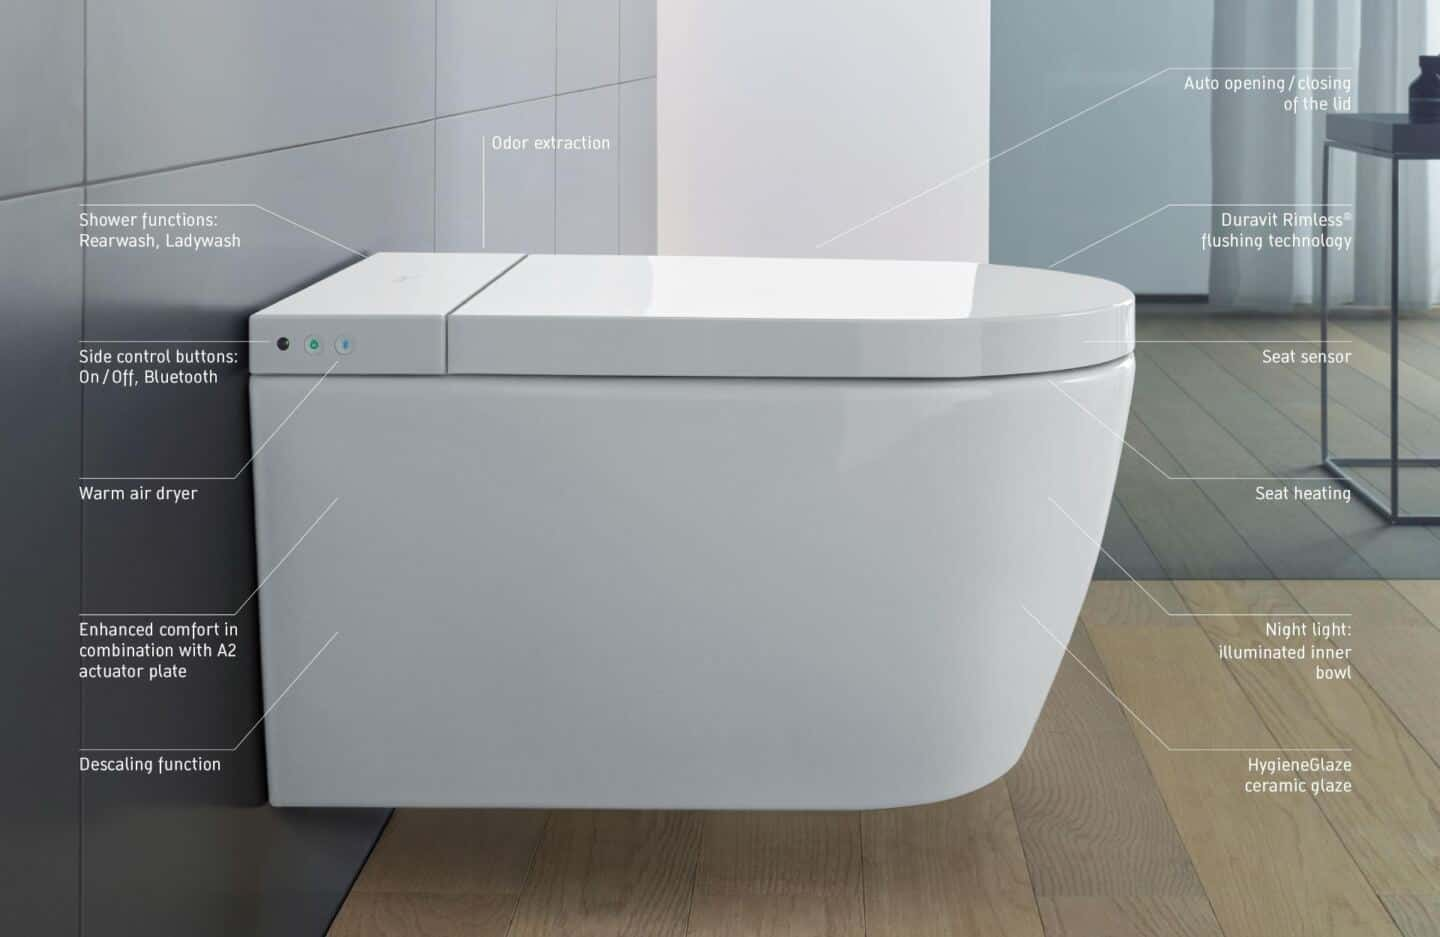 The features of the SensoWash Stark f shower toilet by Duravit and how they provide increased hygiene in the bathroom